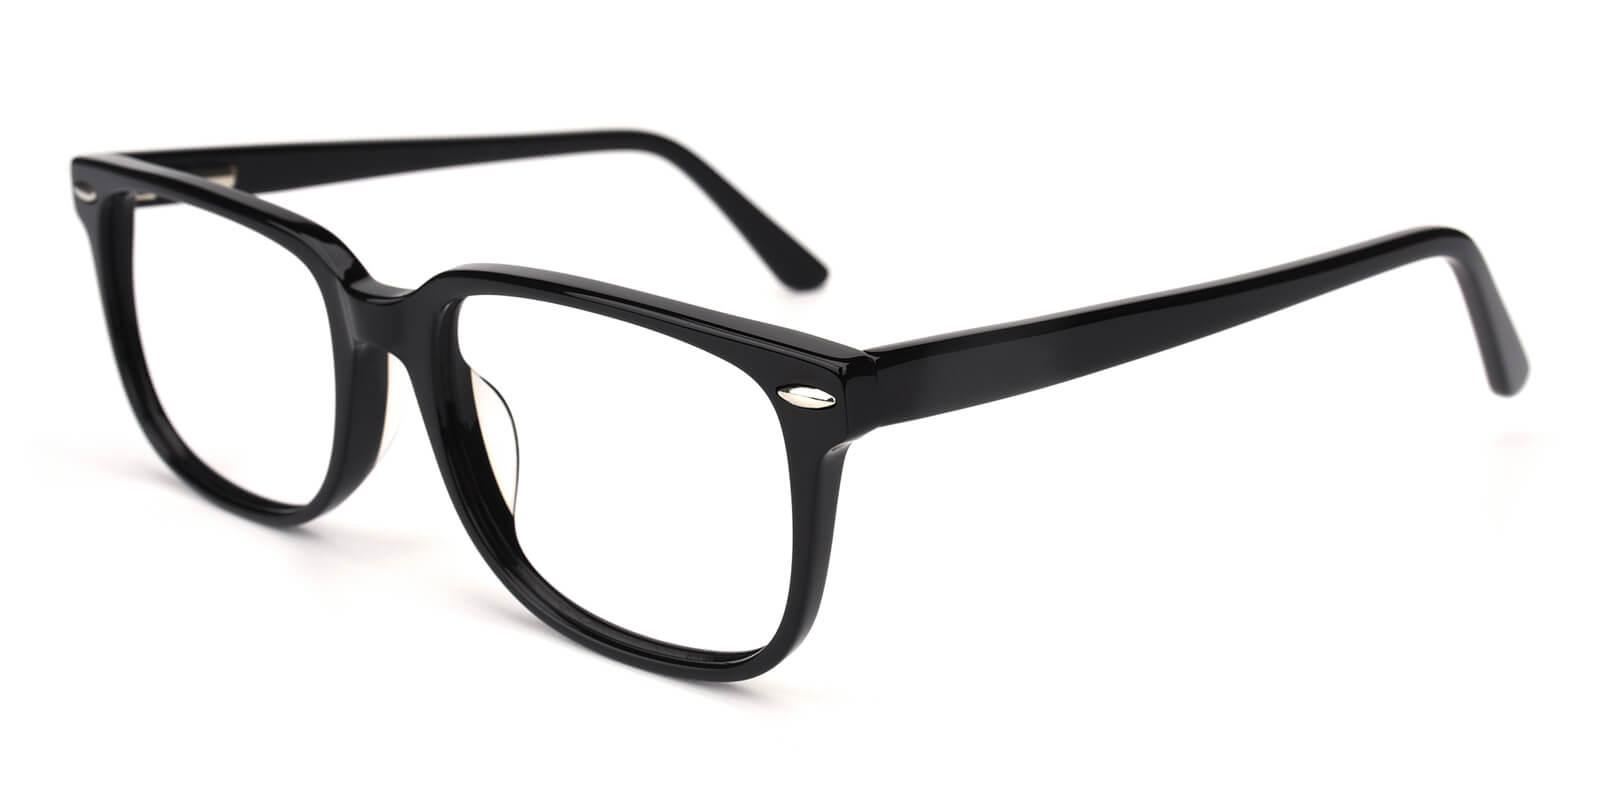 Tempiry-Black-Rectangle-Acetate-Eyeglasses-additional1